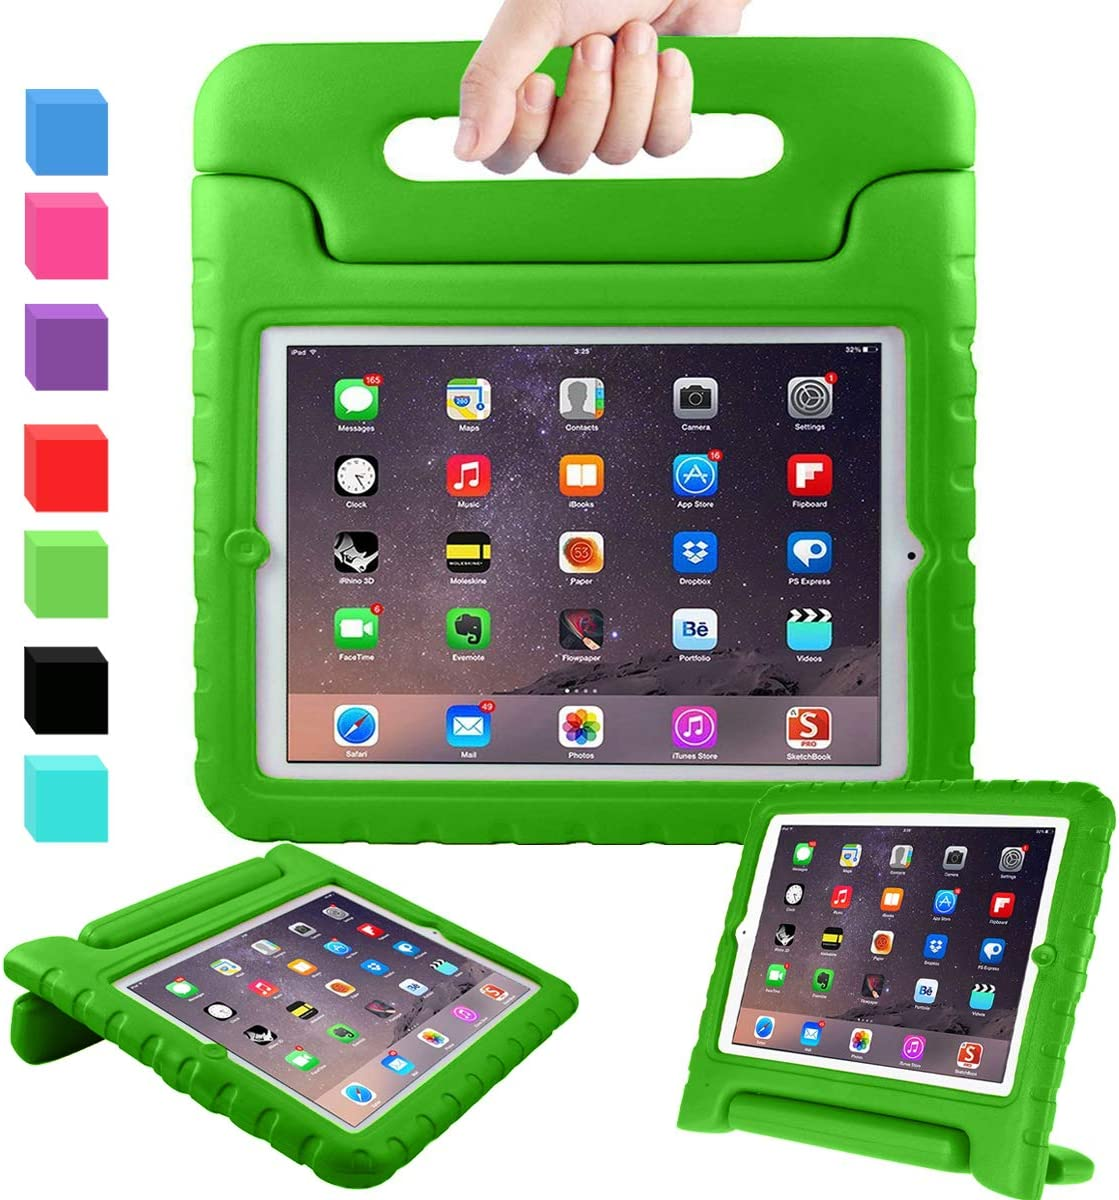 """AVAWO Kids Case for 9.7"""" iPad 2 3 4 (Old Model) - Light Weight Shock Proof Convertible Handle Stand Kids Friendly for iPad 2, iPad 3rd Generation, iPad 4th Generation Tablet - Green"""